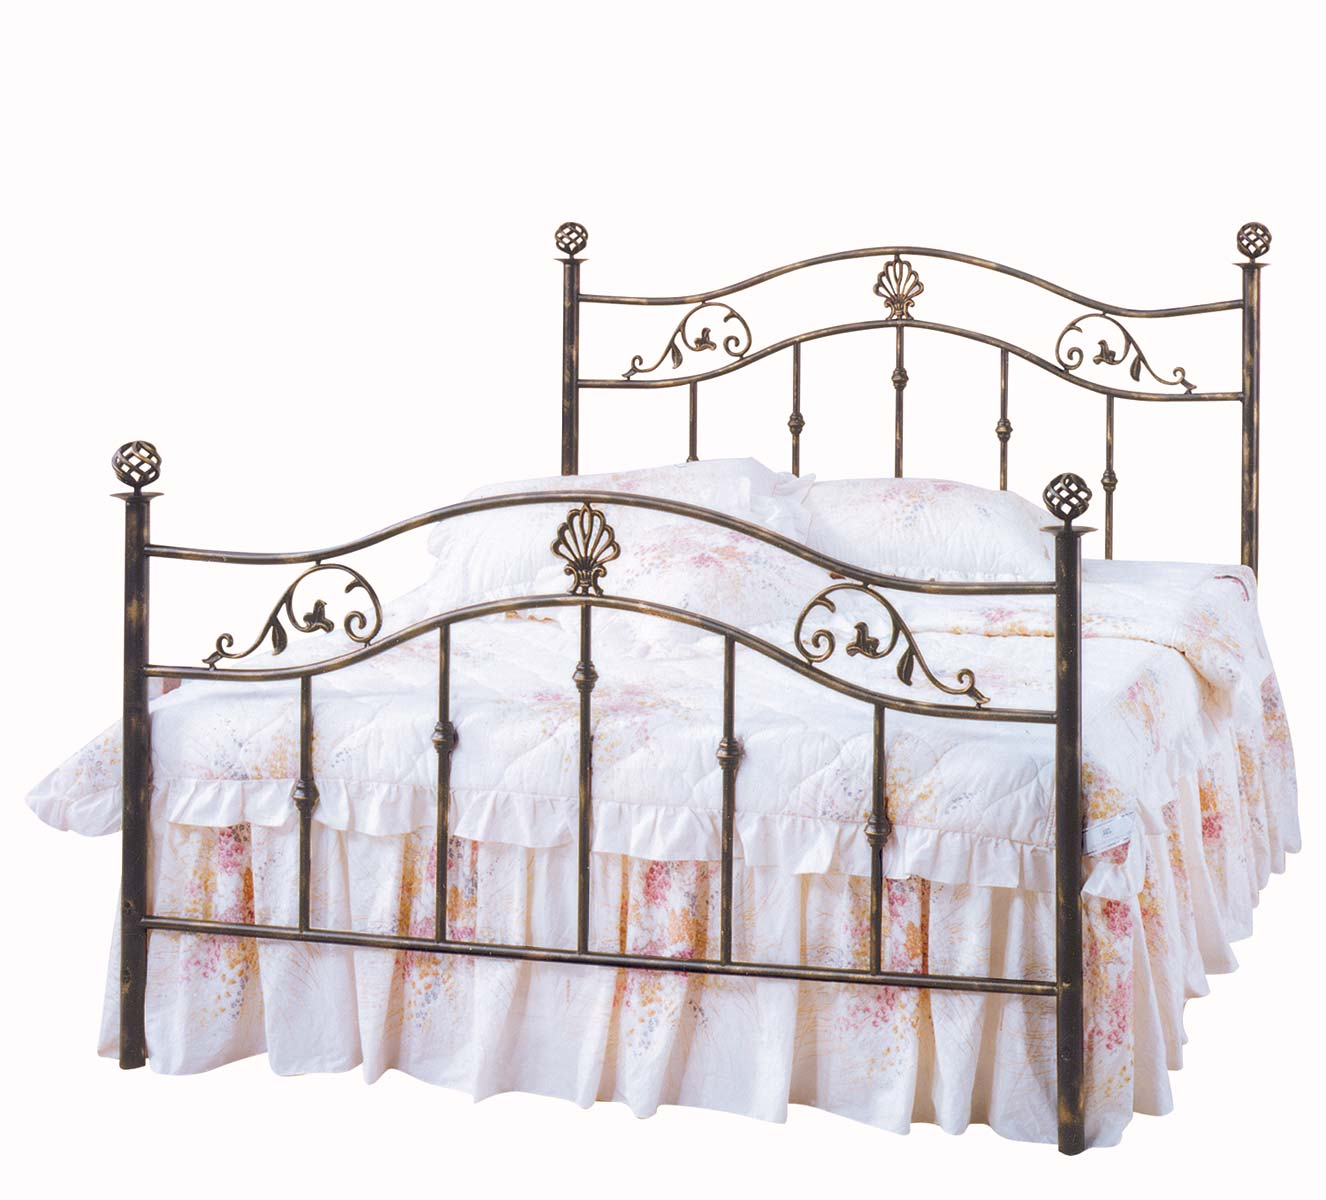 Homelegance Metaline Metal Bed - Distressed Dark Bronze